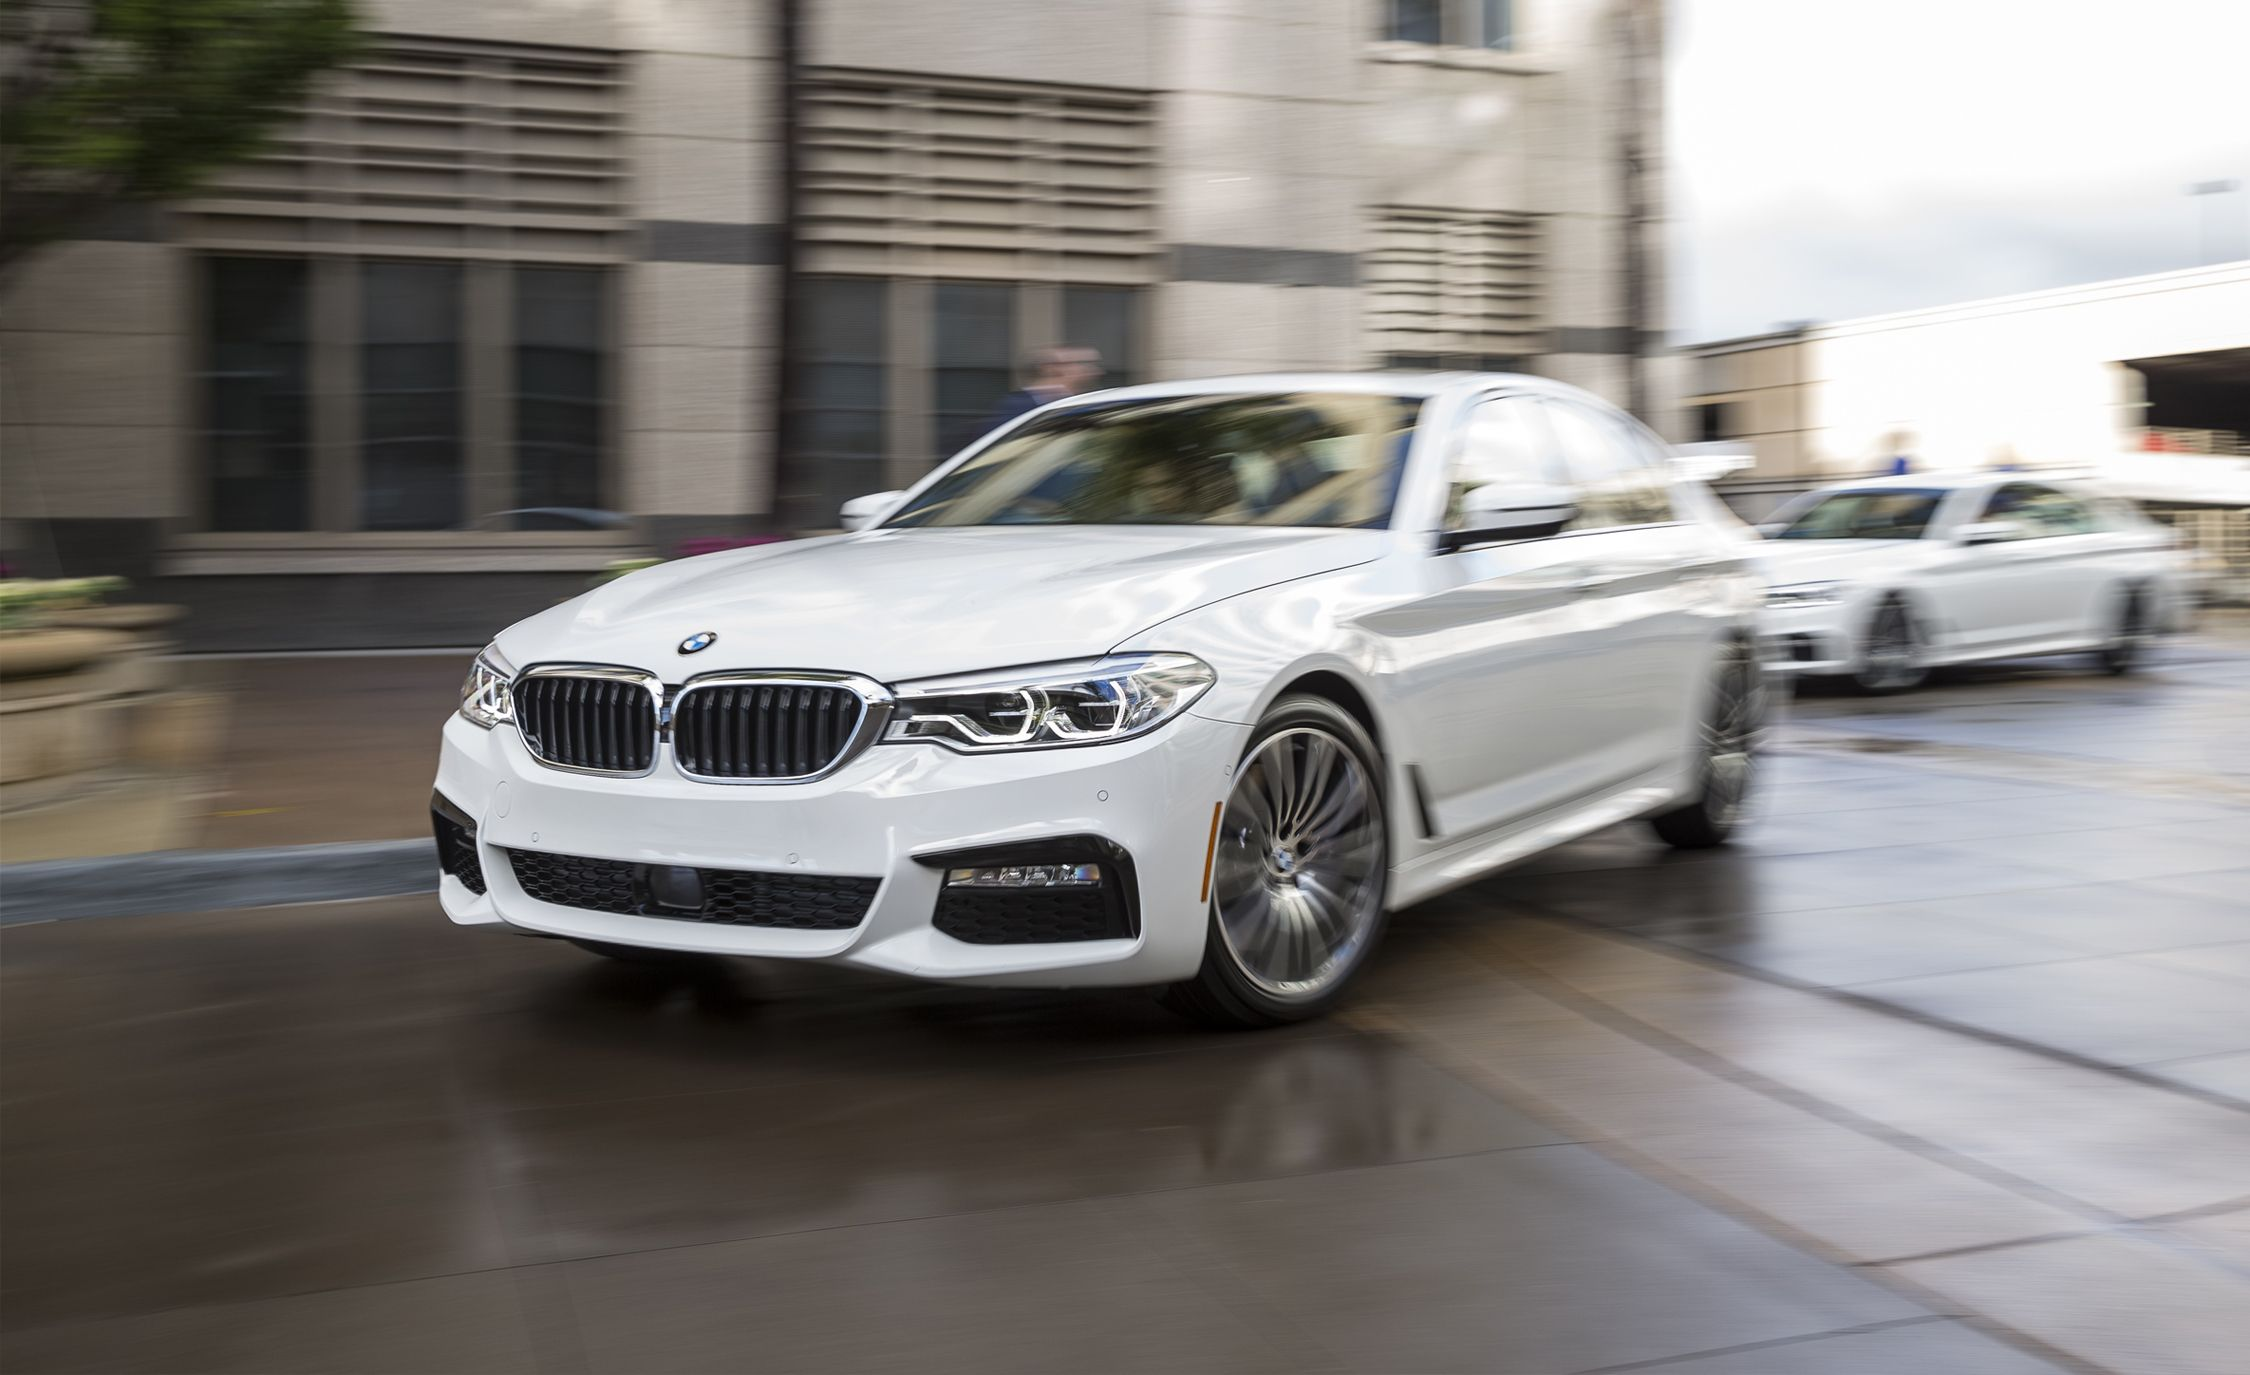 2017 Bmw 530i First Drive 8211 Review 8211 Car And Driver